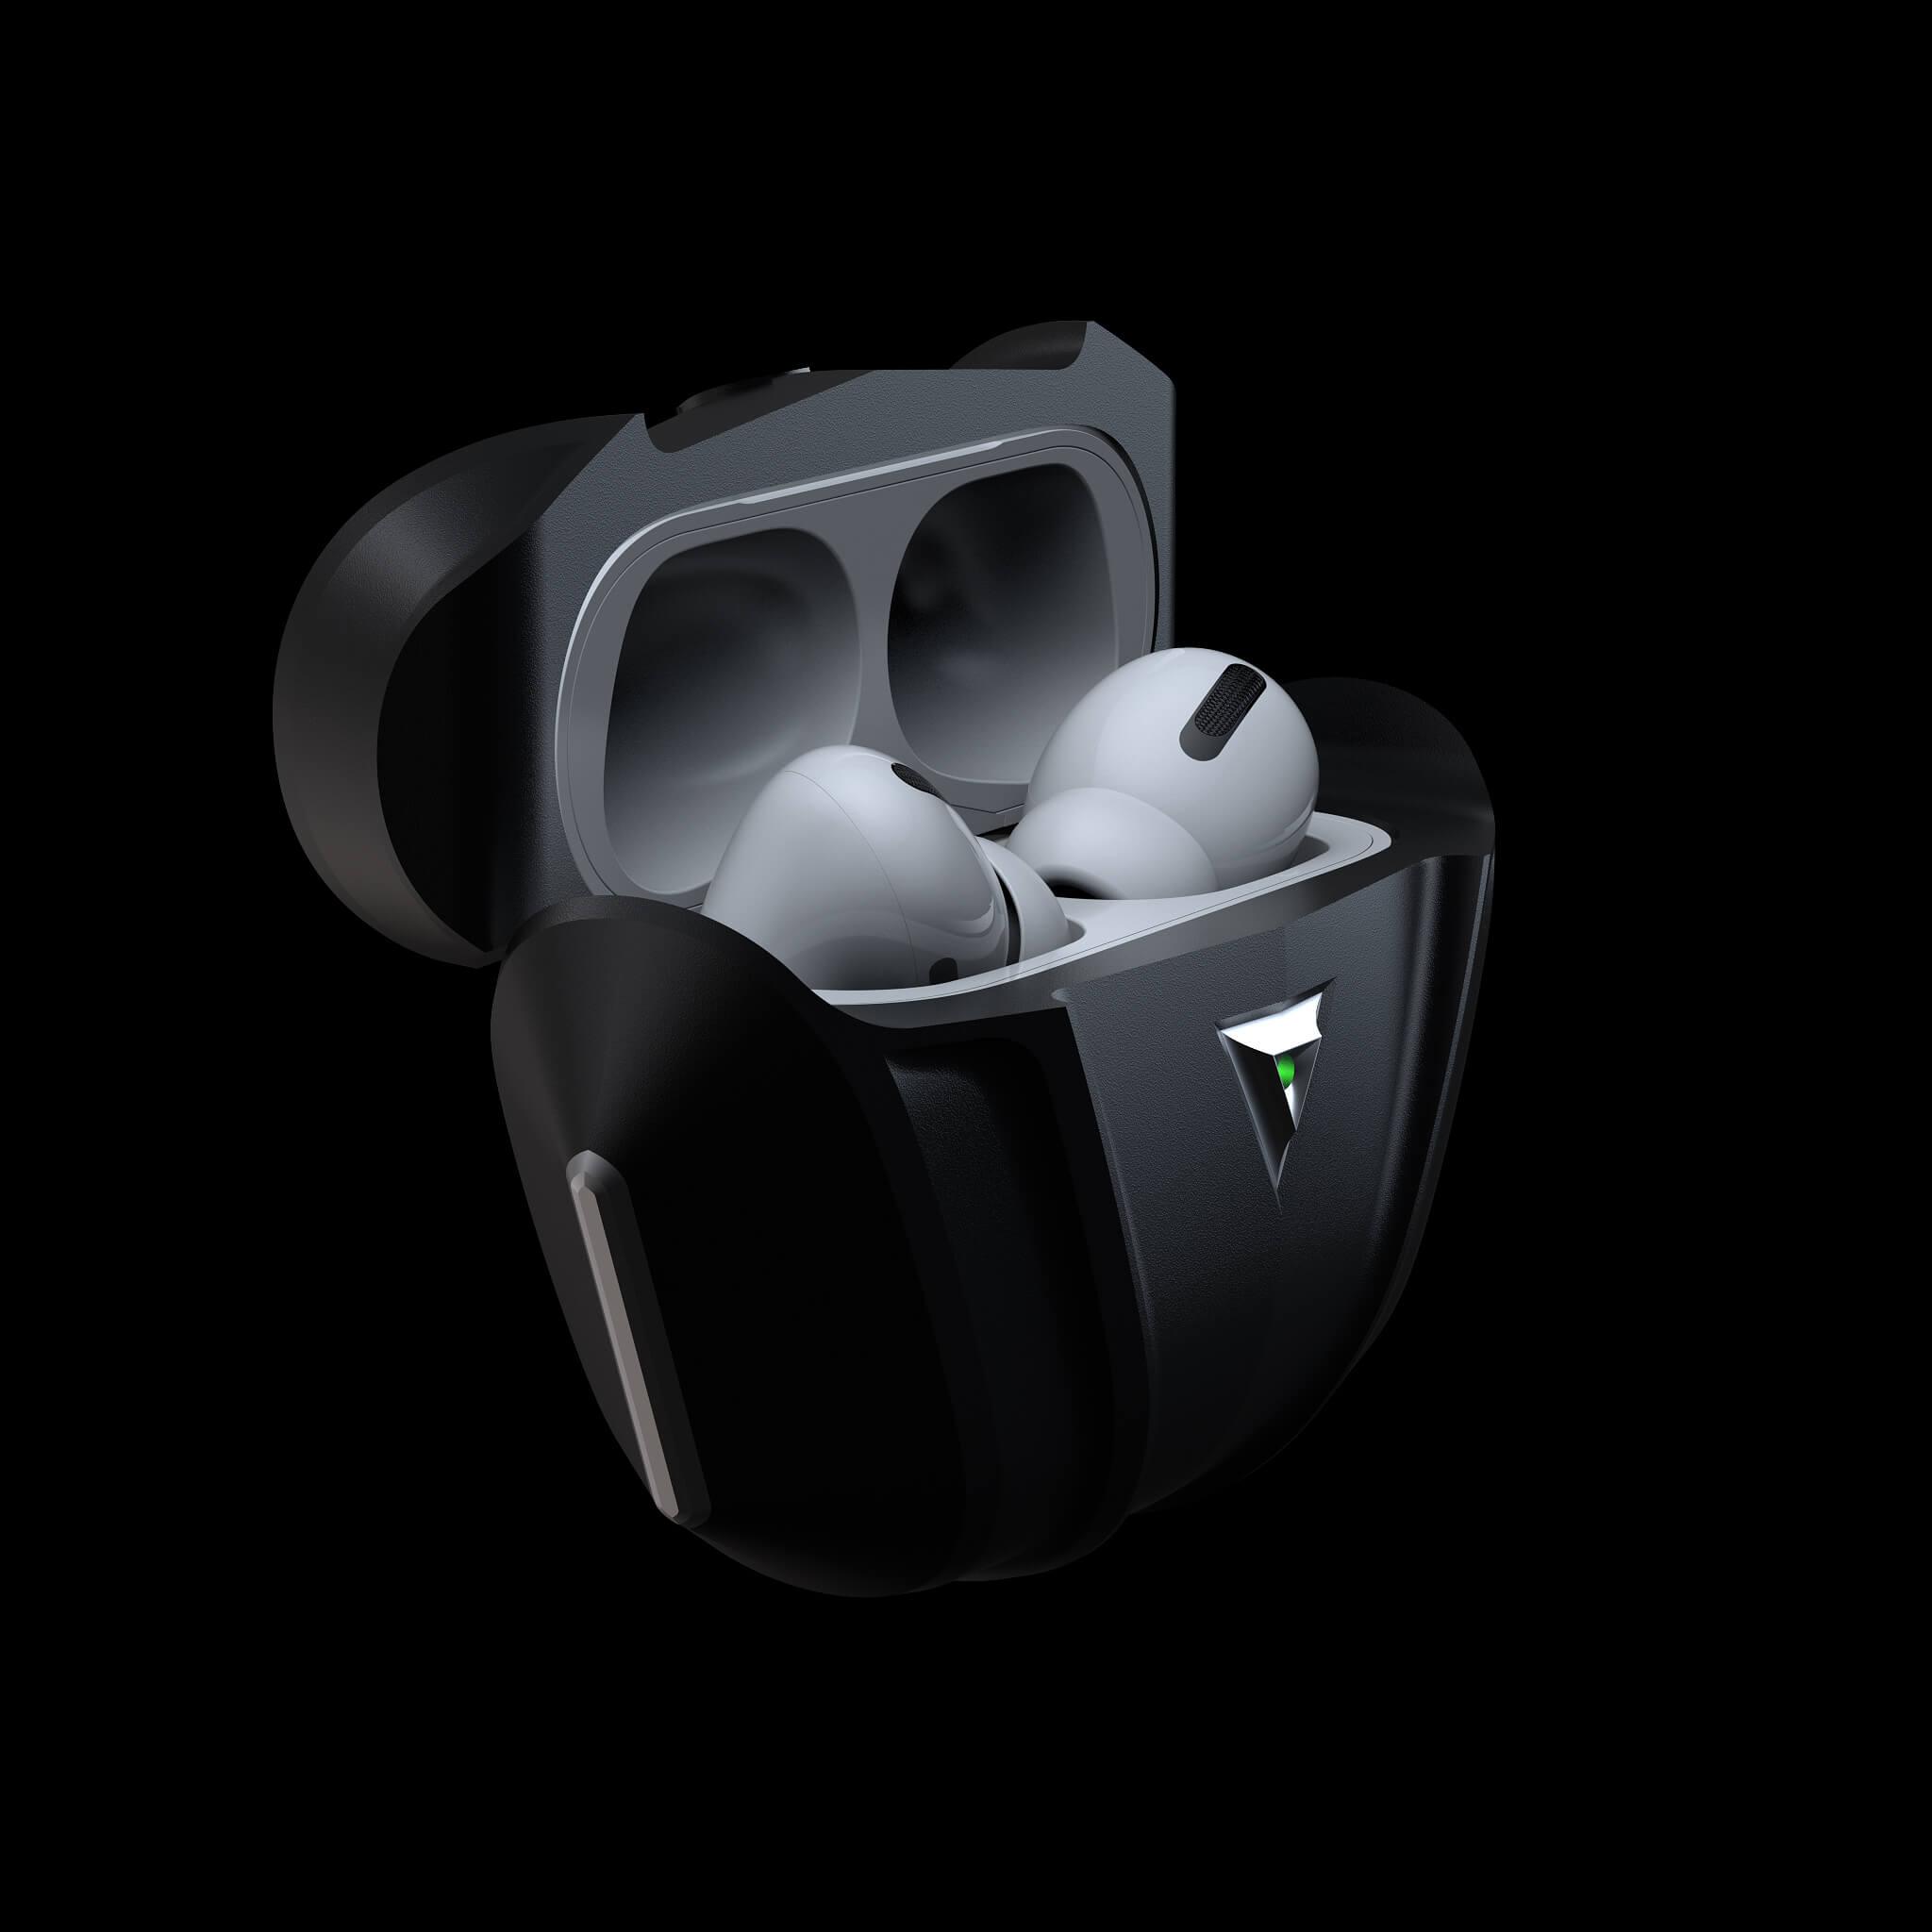 raptor shadow luxury aluminium metal airpods pro case